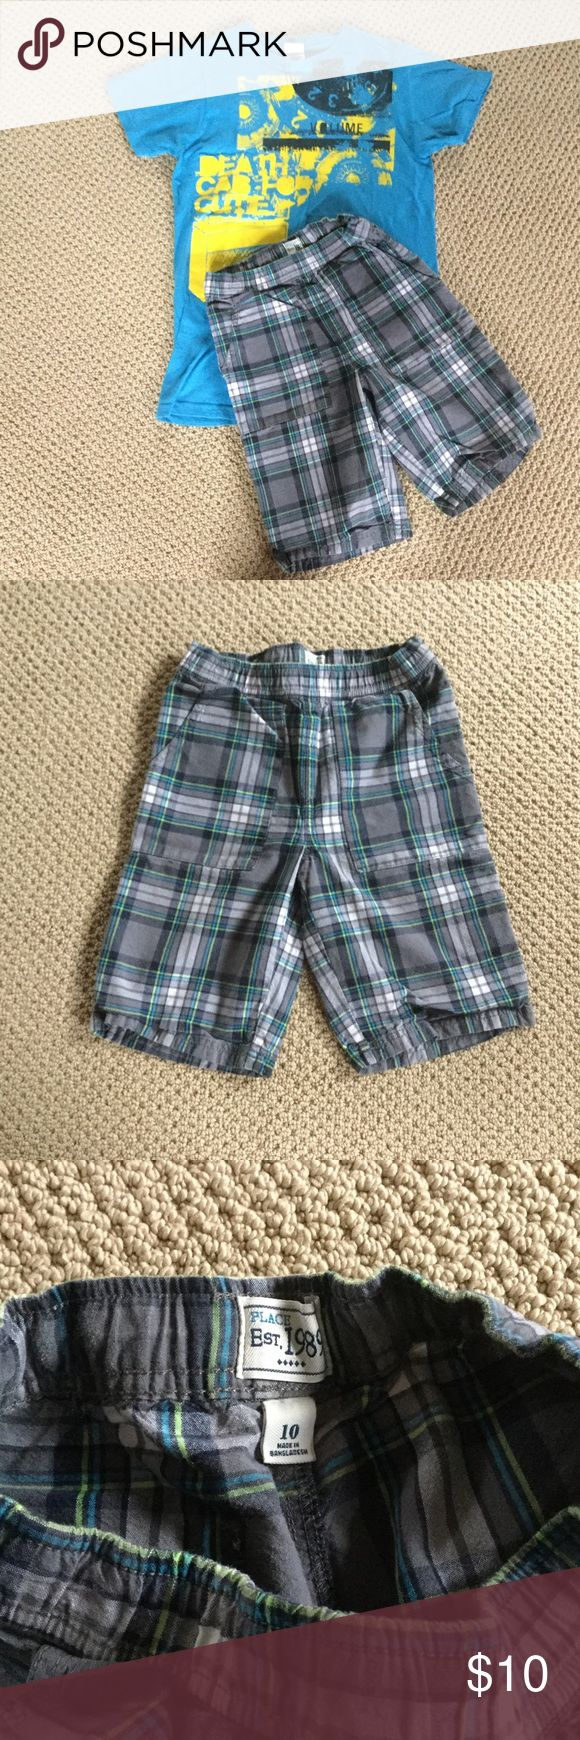 Boy's Size 10 outfit. Old Navy Size 10 adjustable waist shorts.  Bay Island T-shirt size S (approximately size 10-12).  In good condition. Old Navy Bottoms Shorts